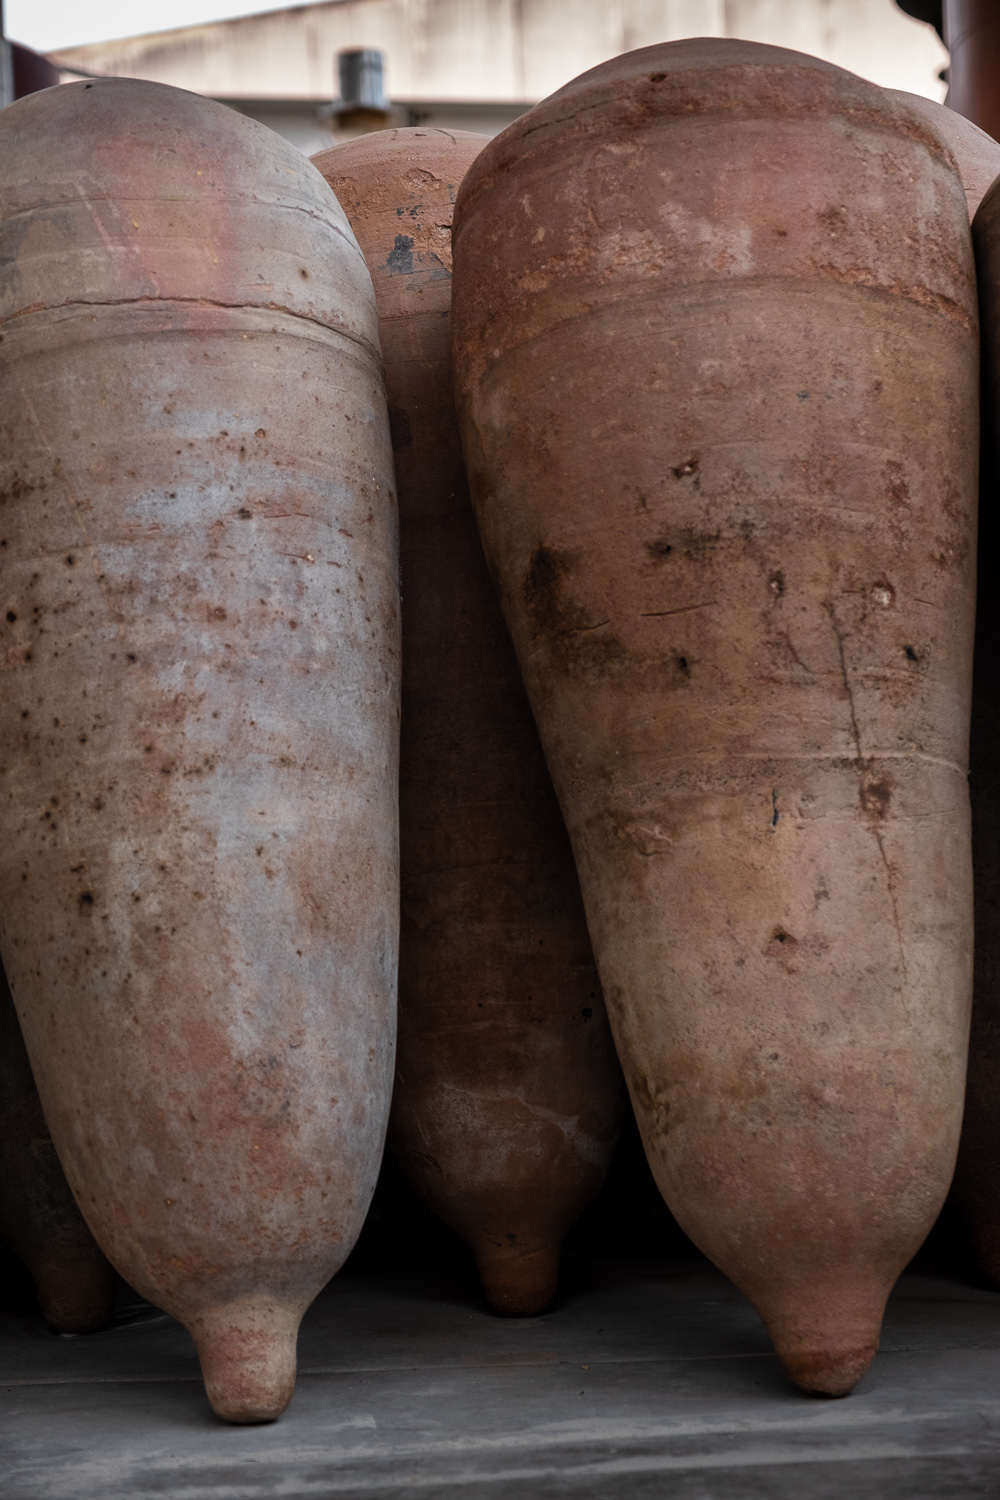 """Old clay containers for wine Tacama Winery in Ica, Peru. Travel photography and guide by © Natasha Lequepeys for """"And Then I Met Yoko"""". #huacachina #photoblog #travelblog #winery #fujifilm #blogger"""